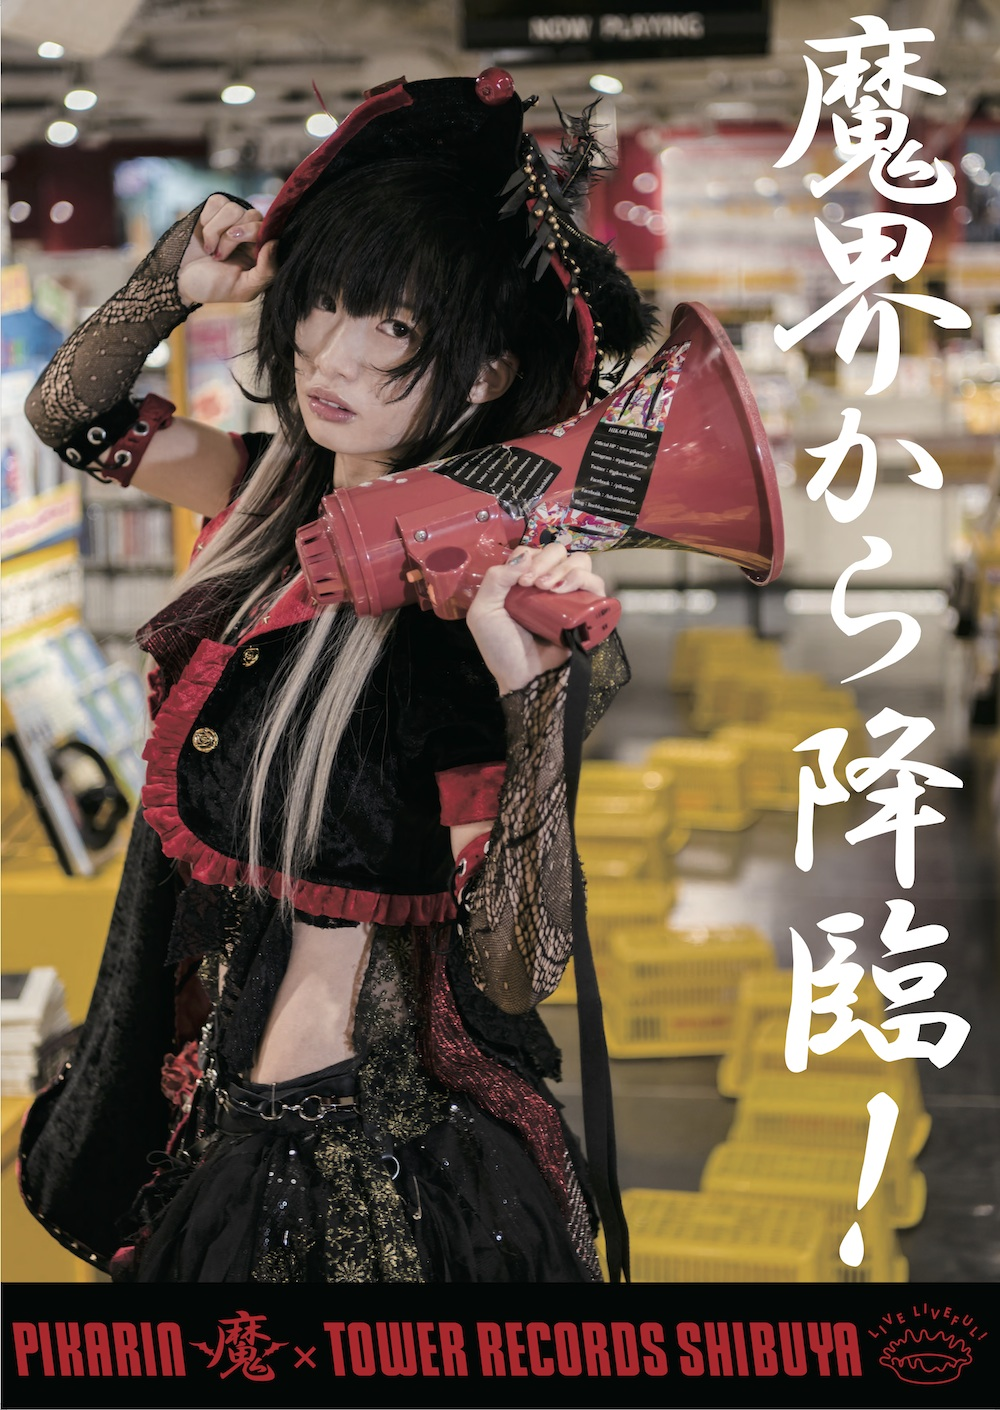 椎名ぴかりん・TOWER RECORDS POSTER